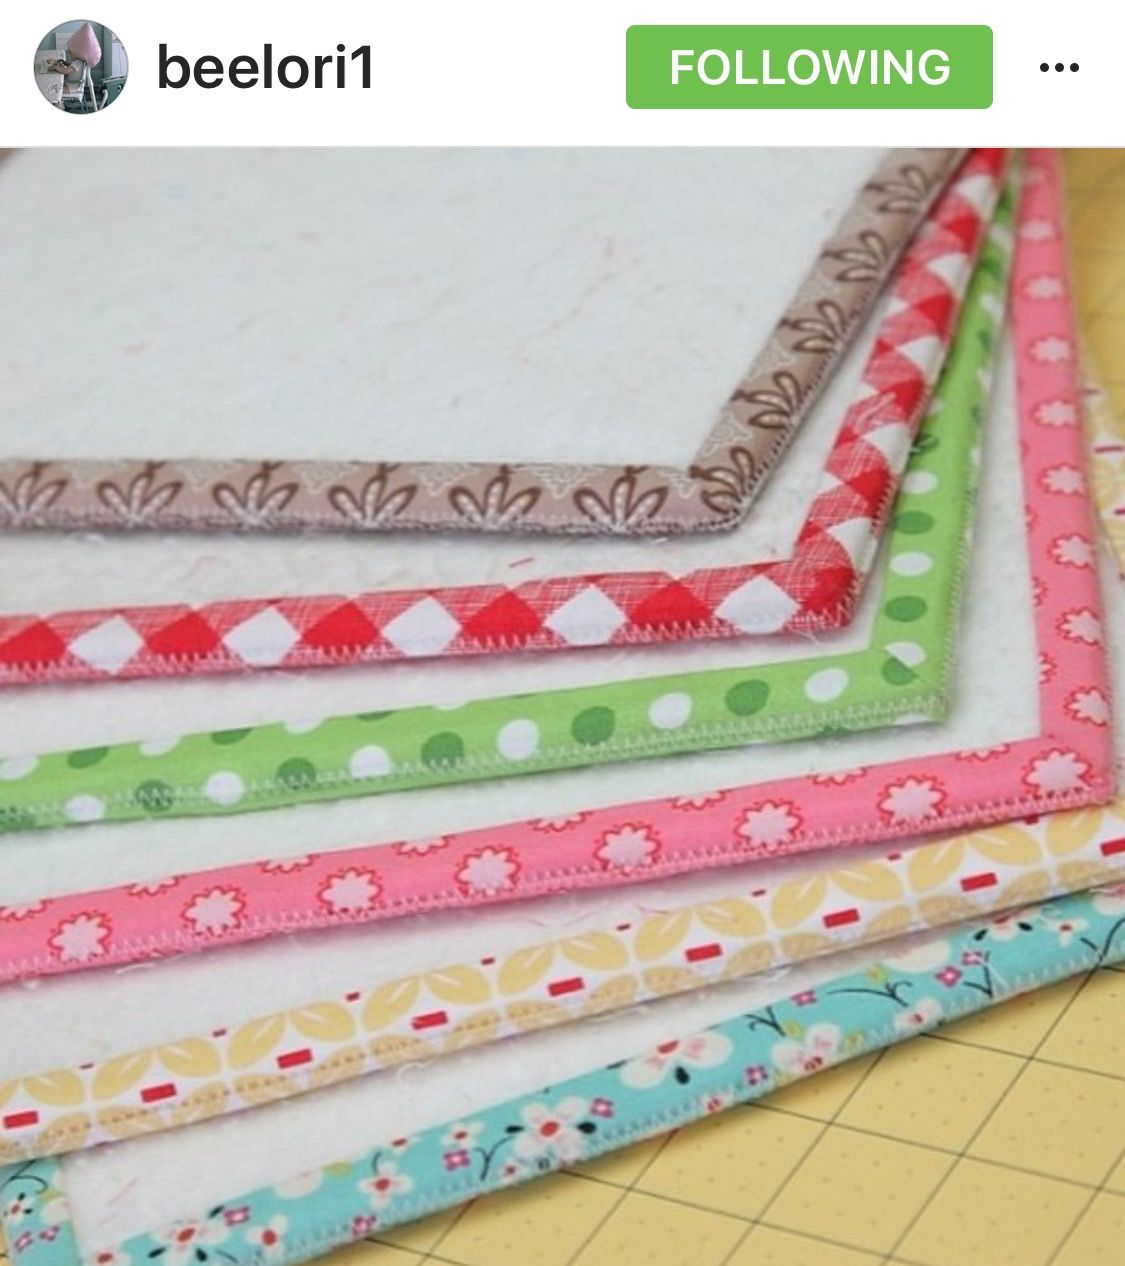 Darling Lori Holt's handmade sewing/quilting mat's!